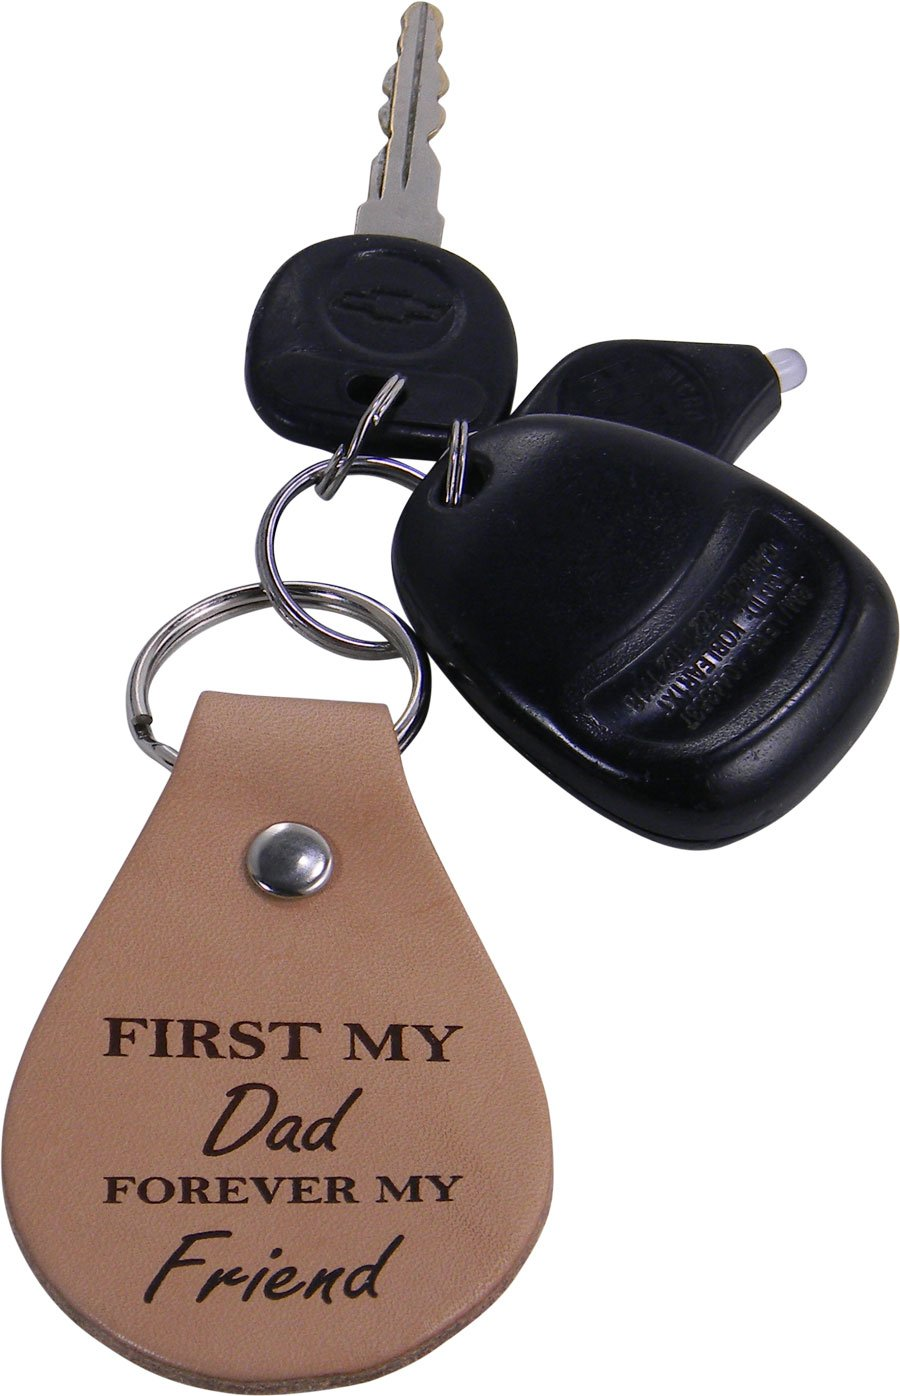 Amazon.com: First My Dad Forever My Friend Leather Key Chain - Great ...